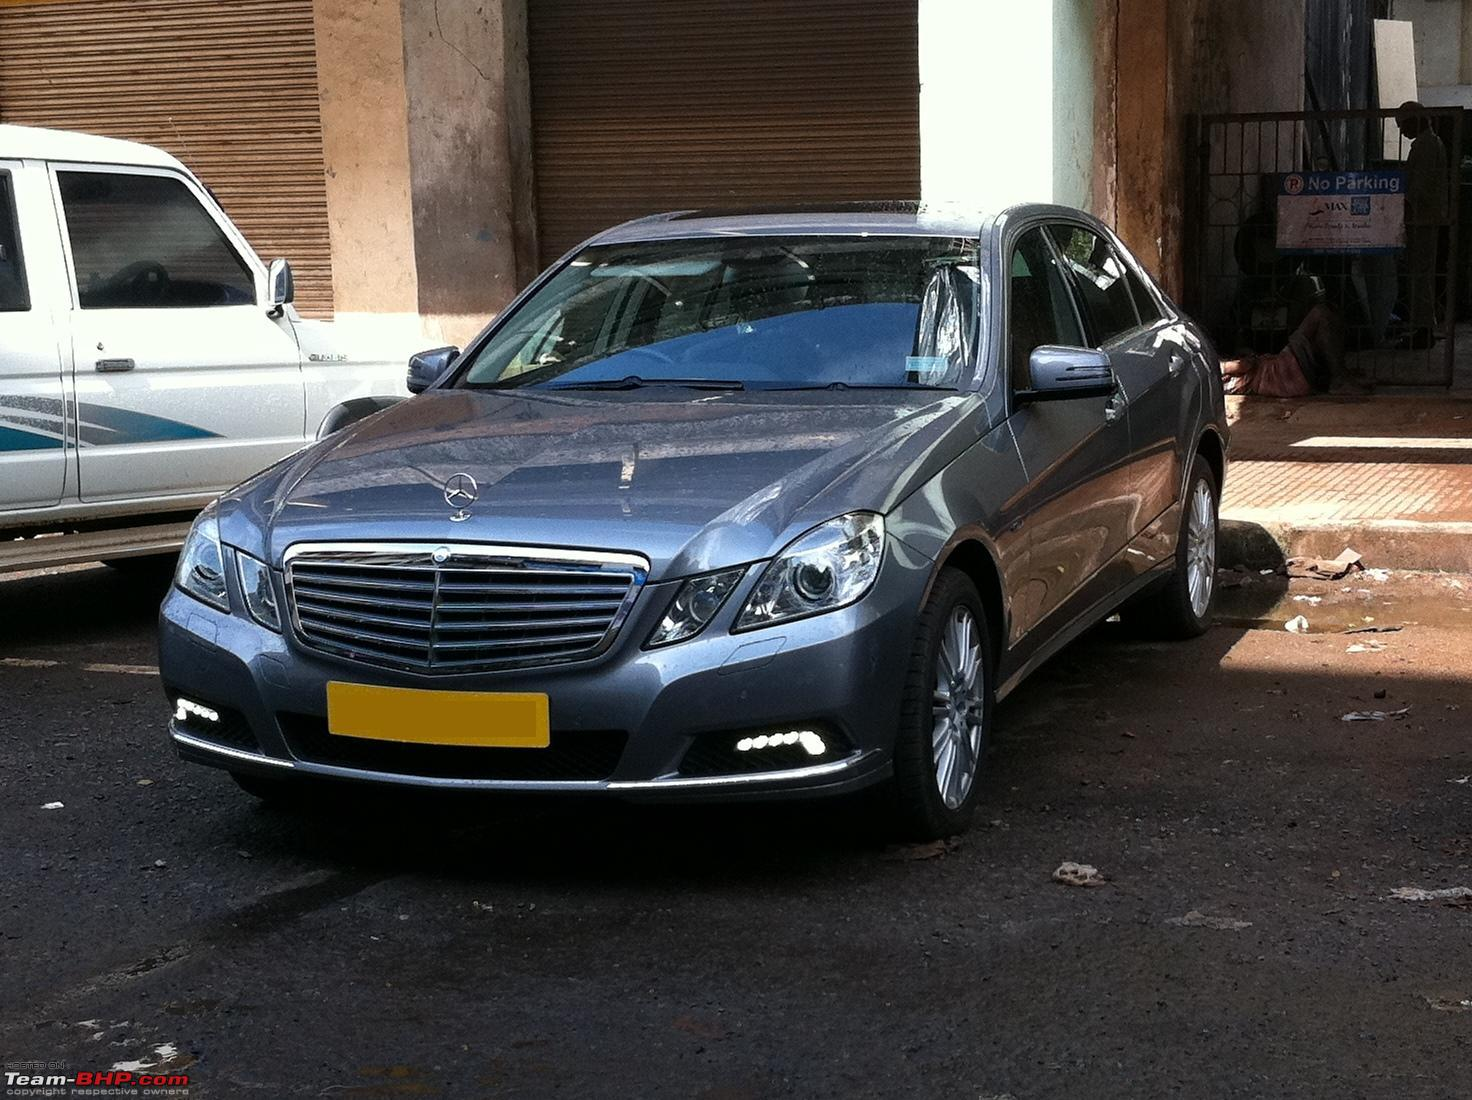 BOOK A LUXURY TAXI FOR TRAVEL TO PUNJAB